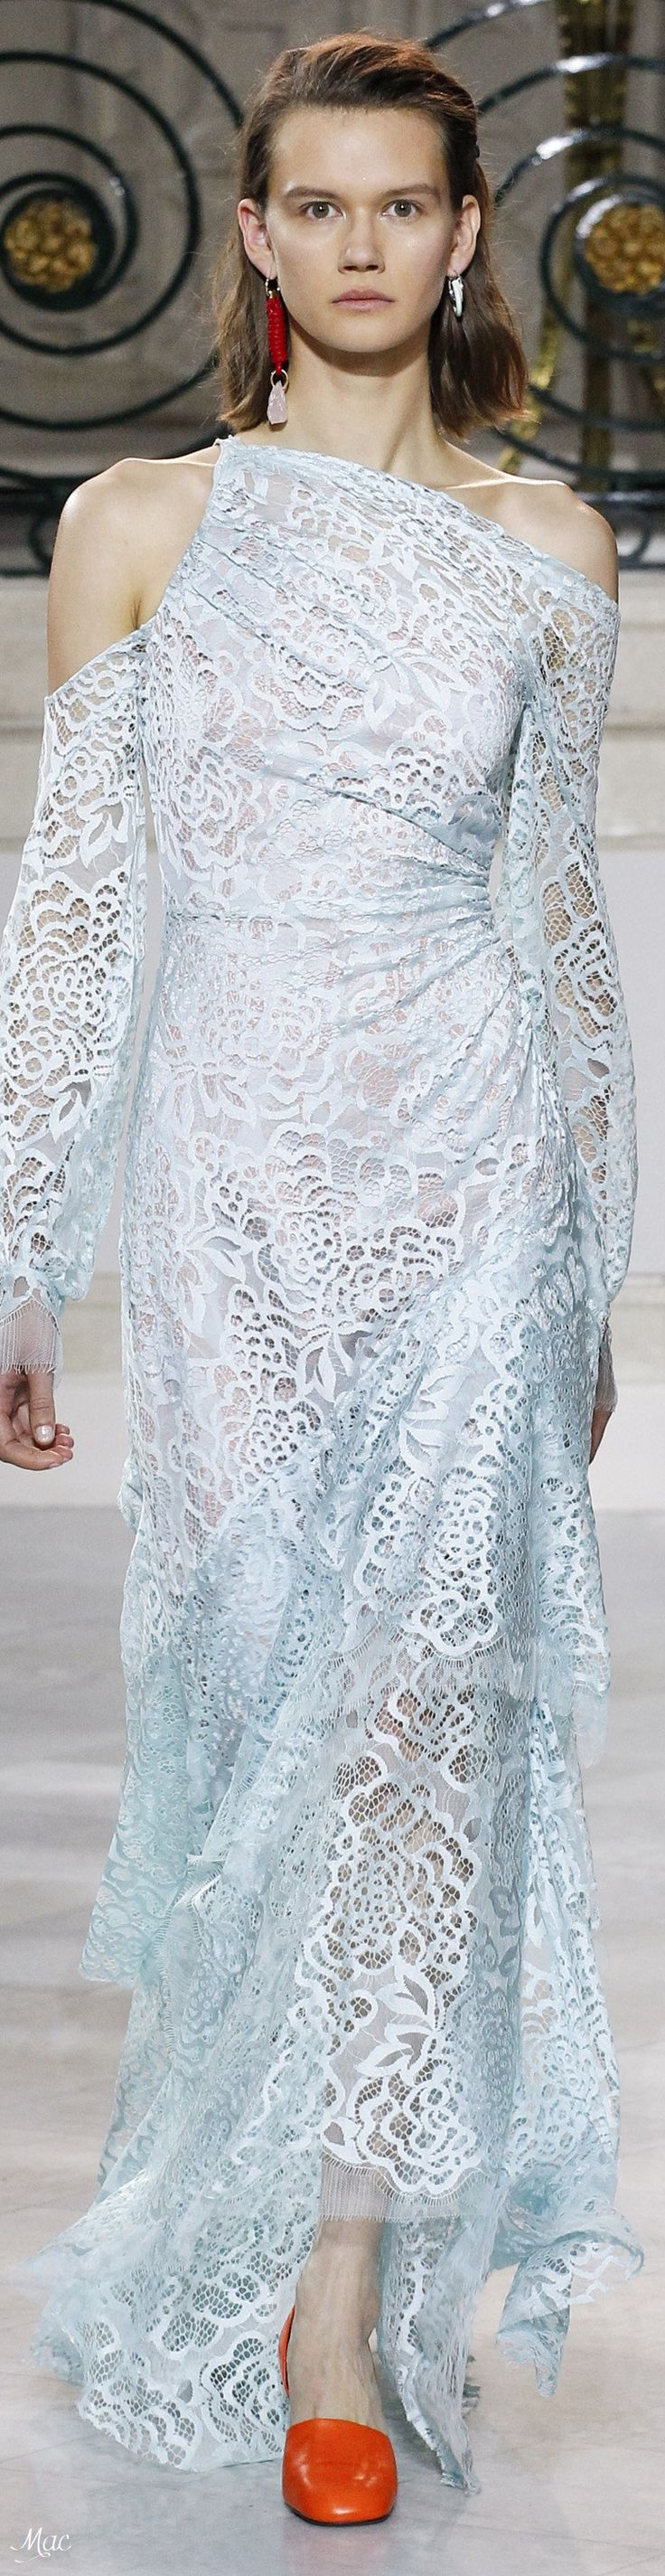 1224 best haute couture 1 images on Pinterest